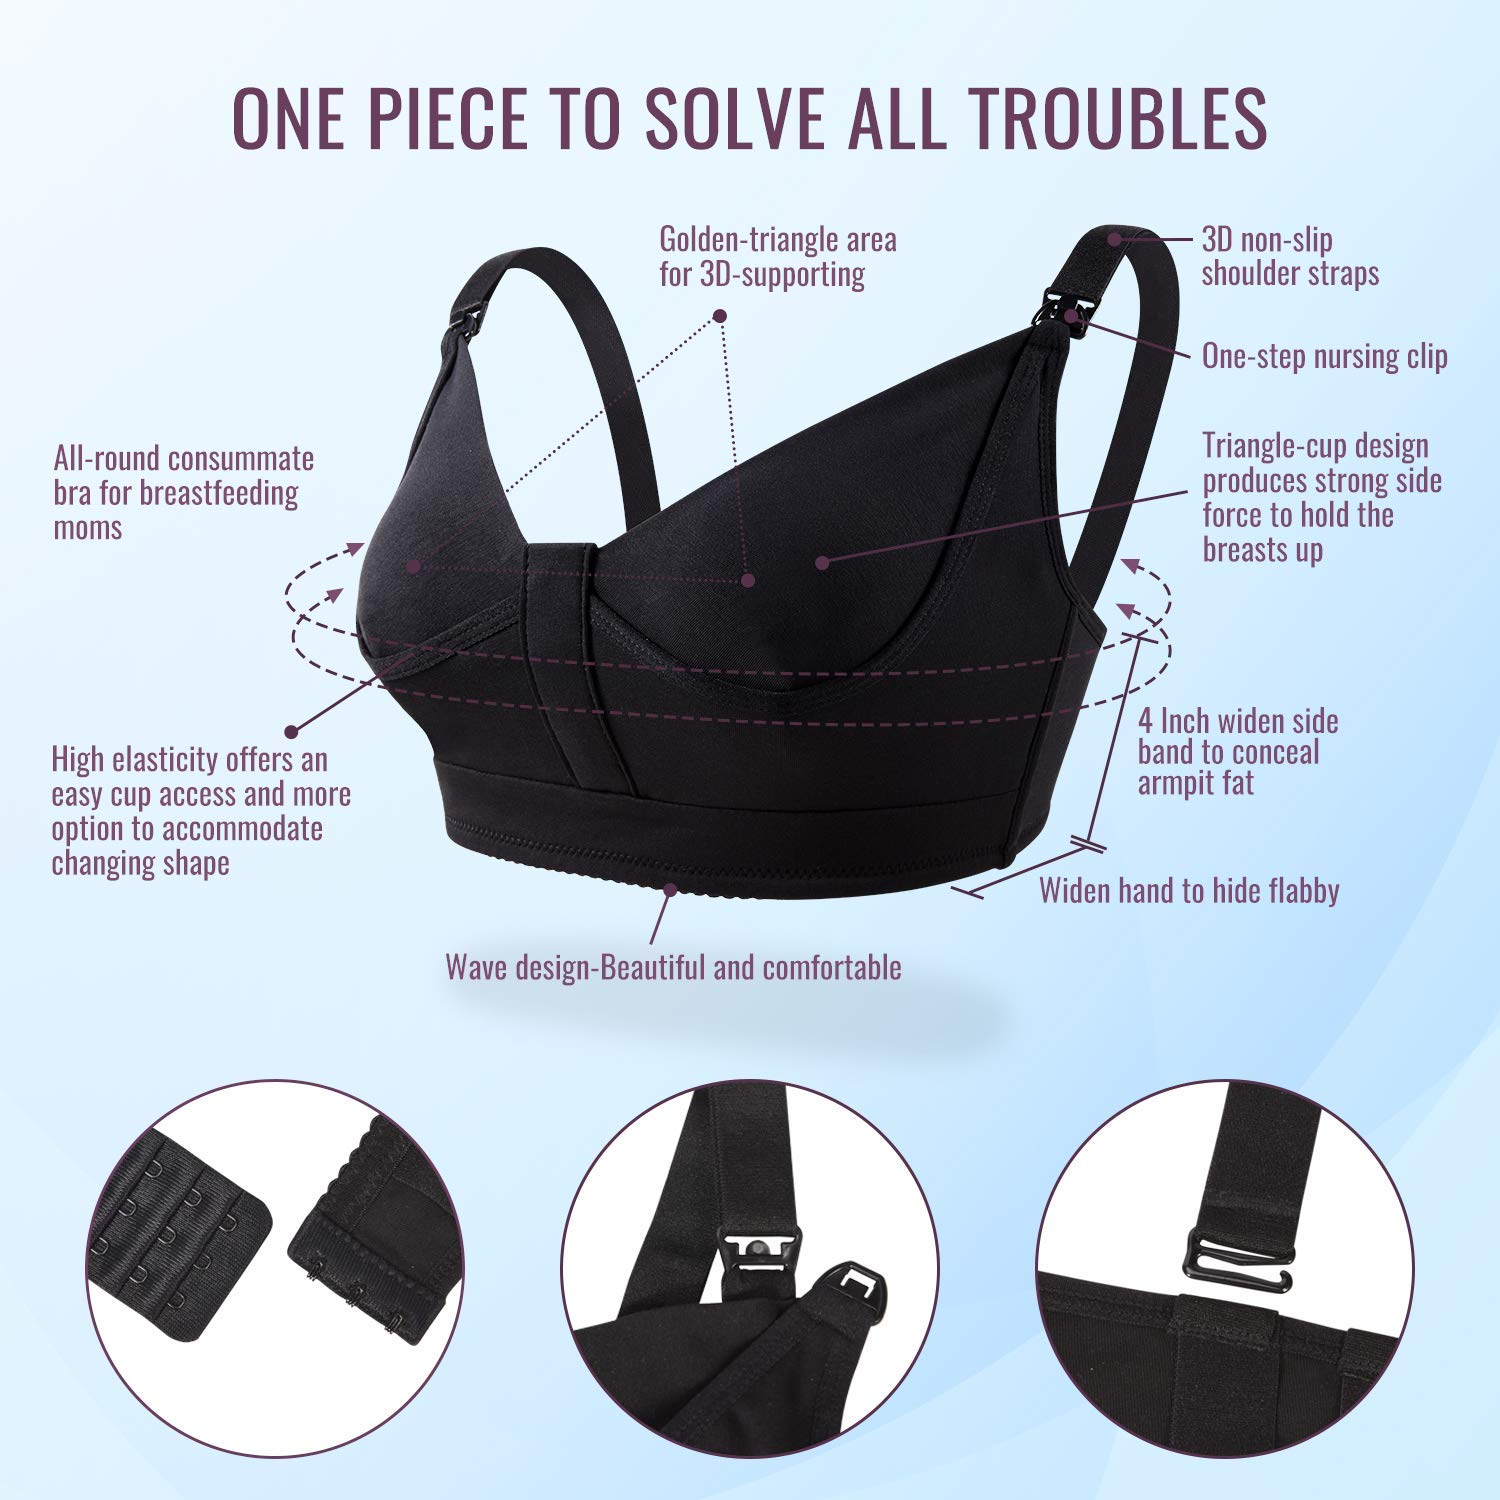 Hands Free Pumping Bra Lupantte Breastfeeding Bra Comfortable for All Day Wear and Adaptable with No-Slip Support Breast Pump Nursing Bra with Pads Multitasking. Small